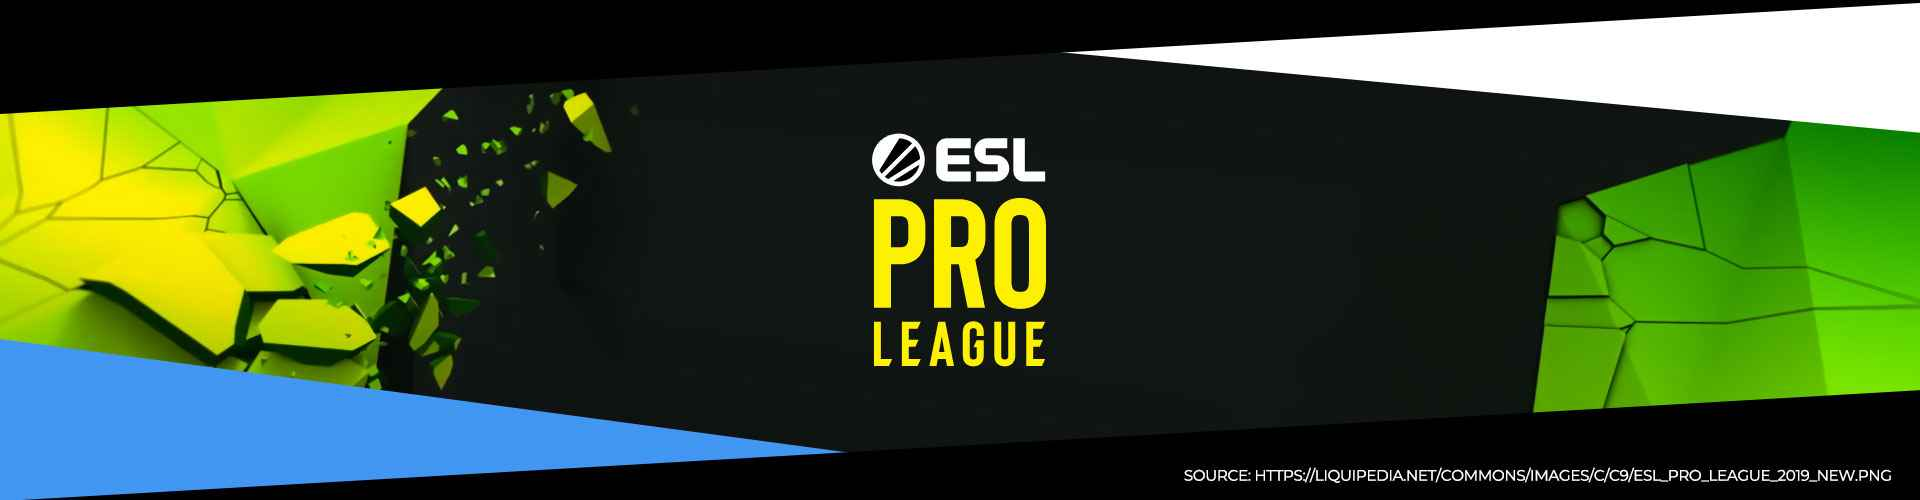 Turneringssida för ESL Pro League Säsong 12: Nordamerika